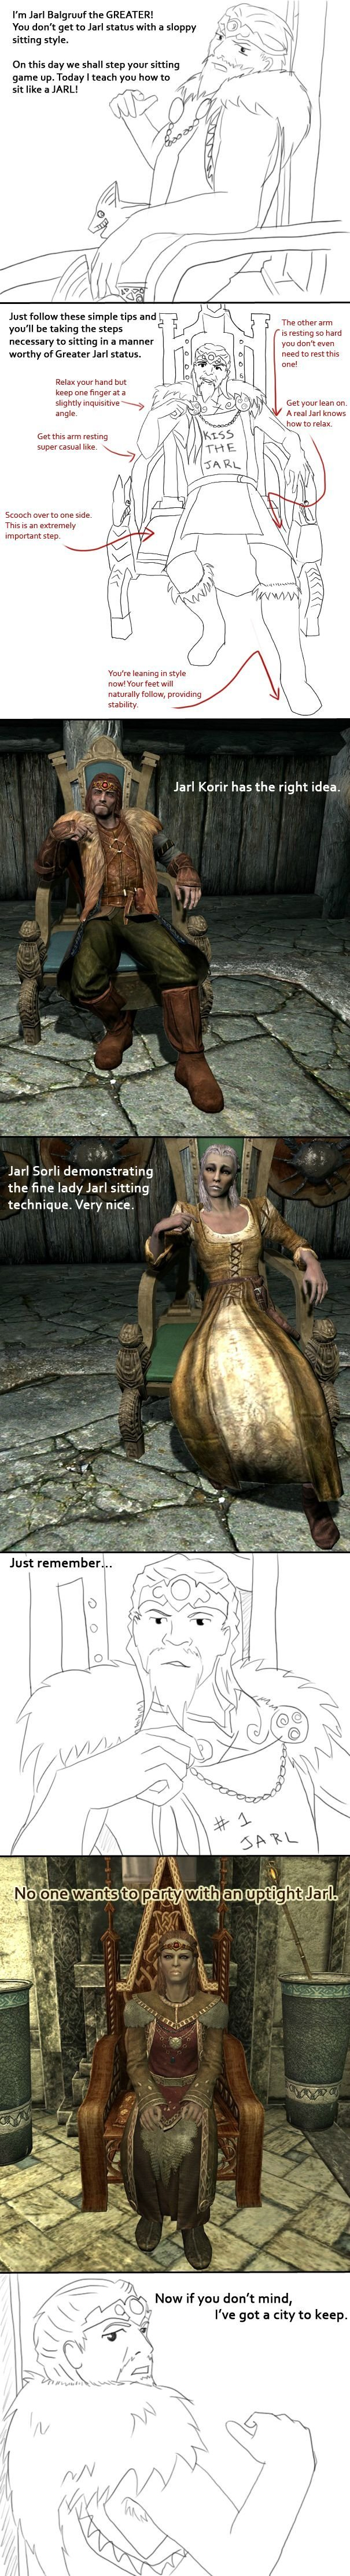 Party like a Jarl. this here is the description. I' m Jeri GREATER! You don' t get to Jan status with a sloppy sitting style. on this day we shall step your sit